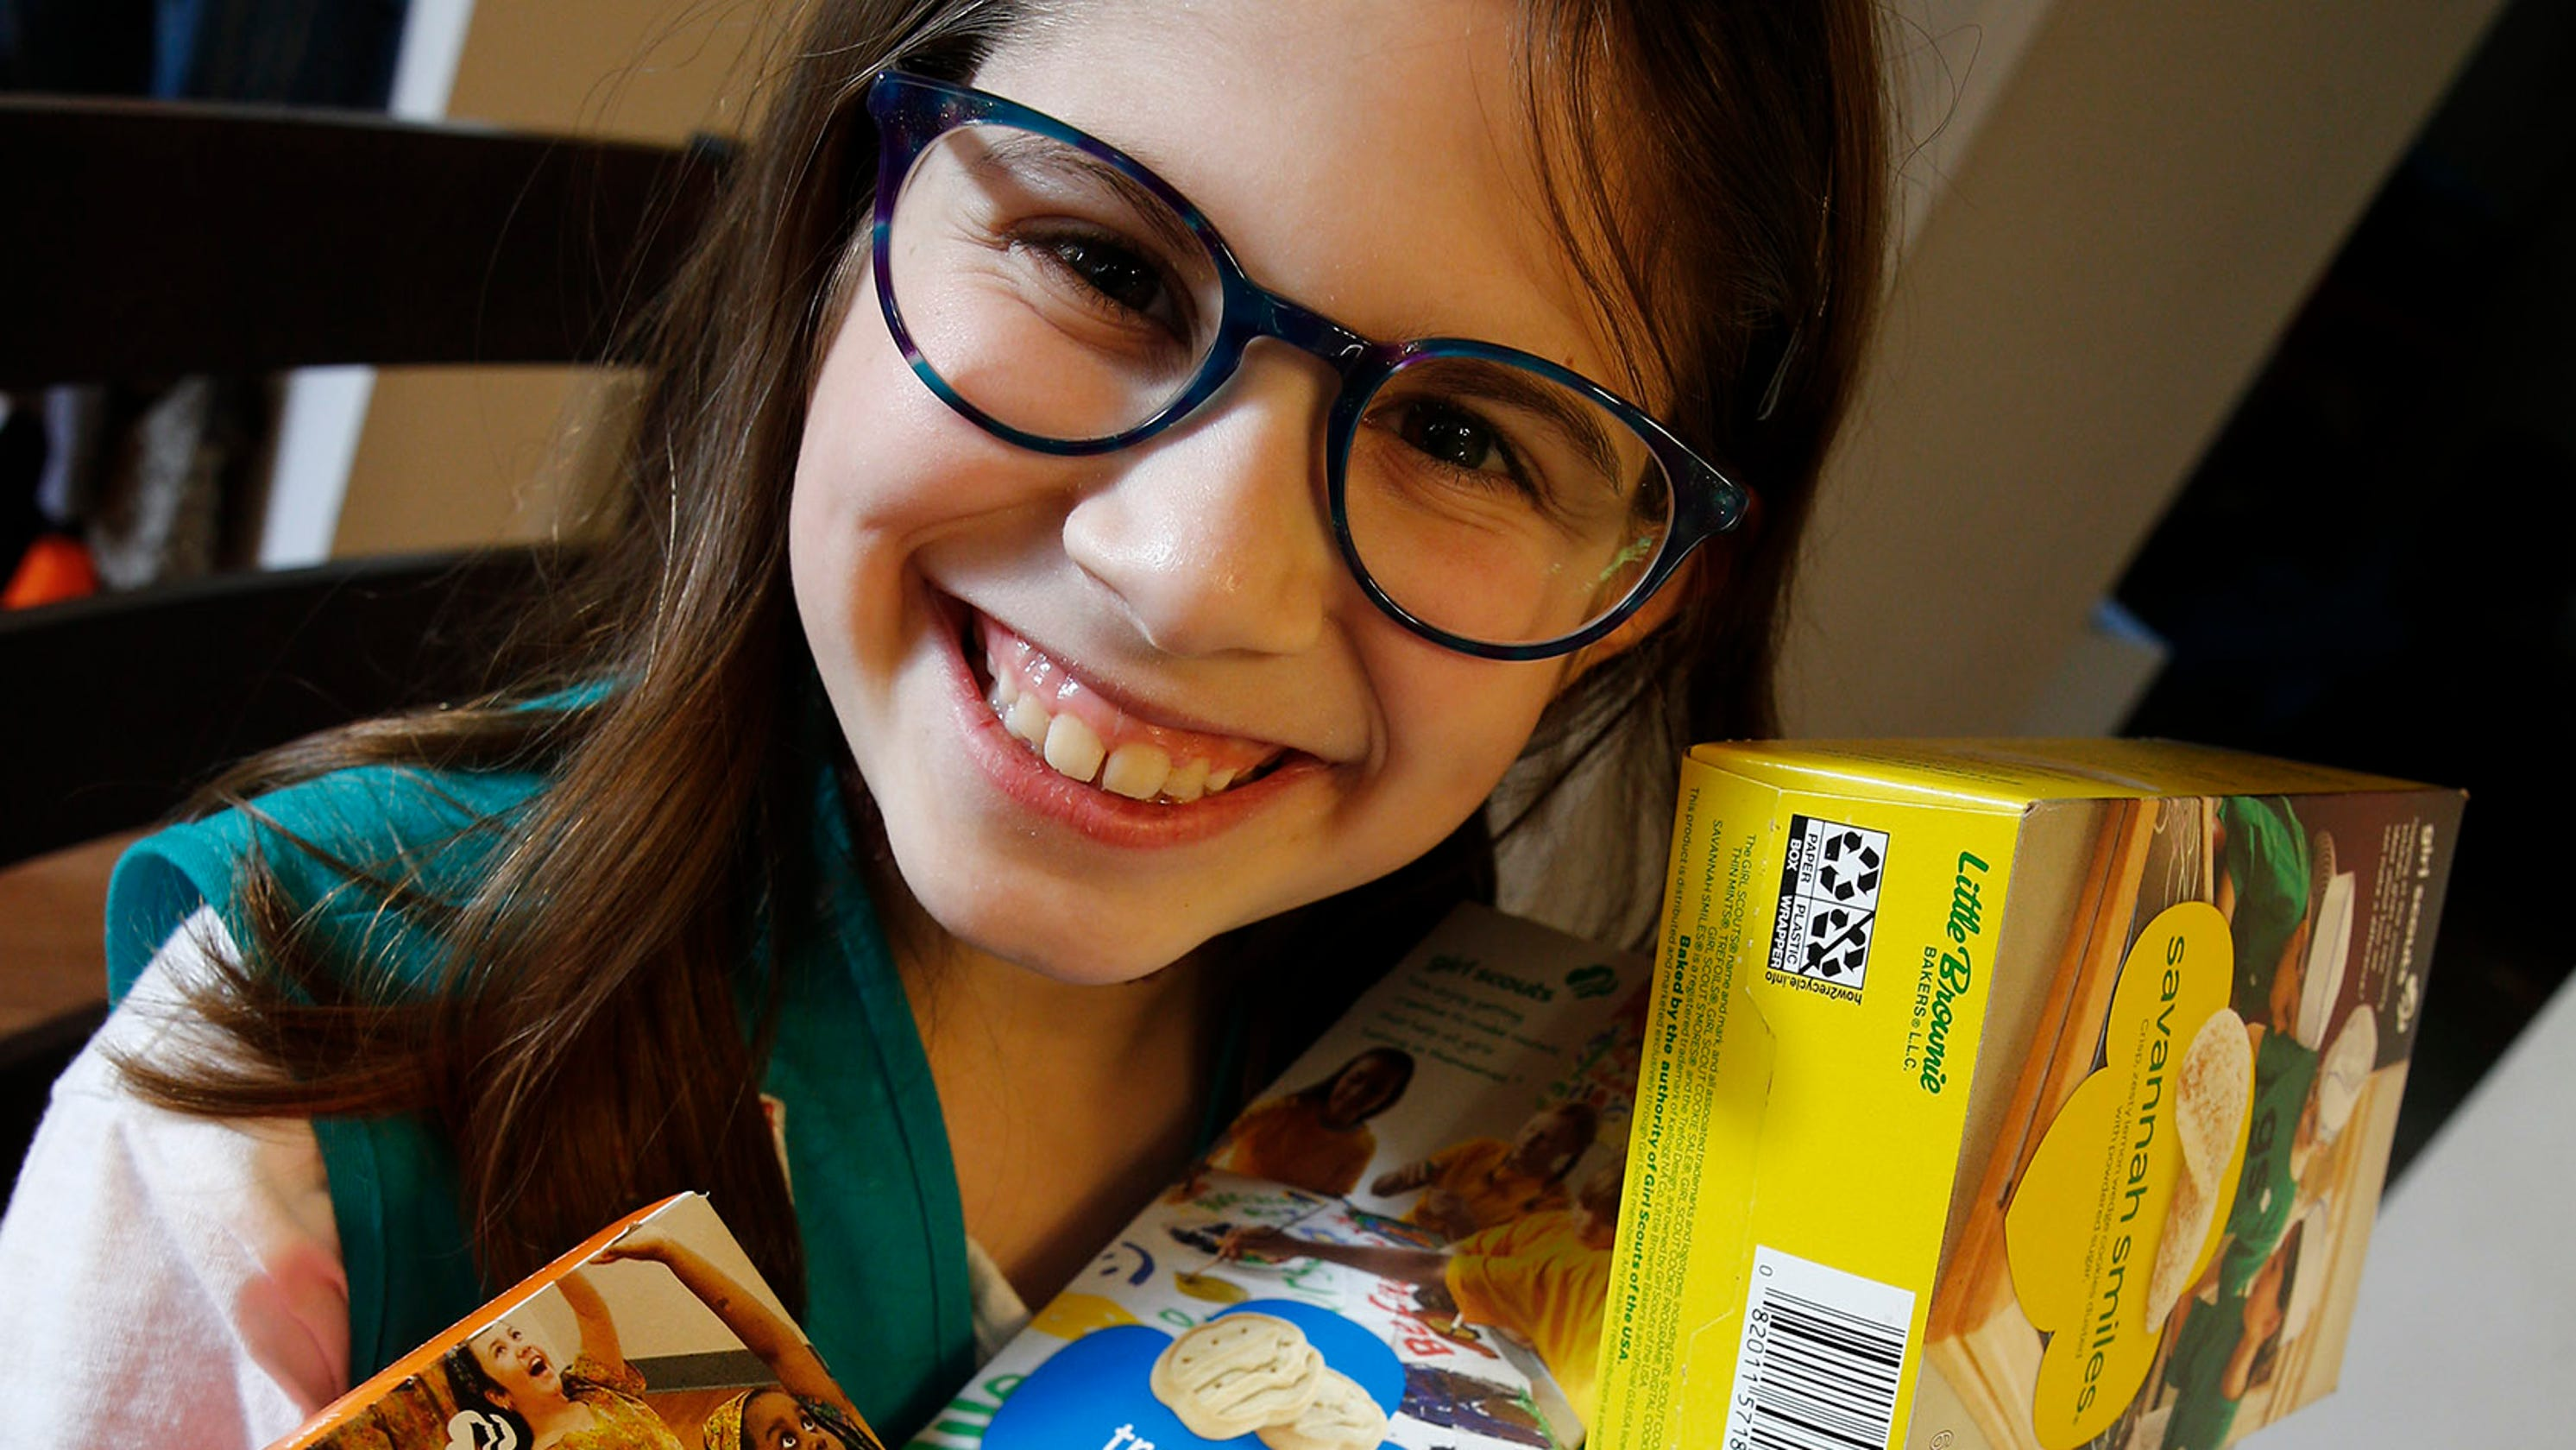 We Live In An Age Of Universal Investigation And Of: Holmdel Girl Scout, Age 9, Sells How Many Boxes Of Cookies?